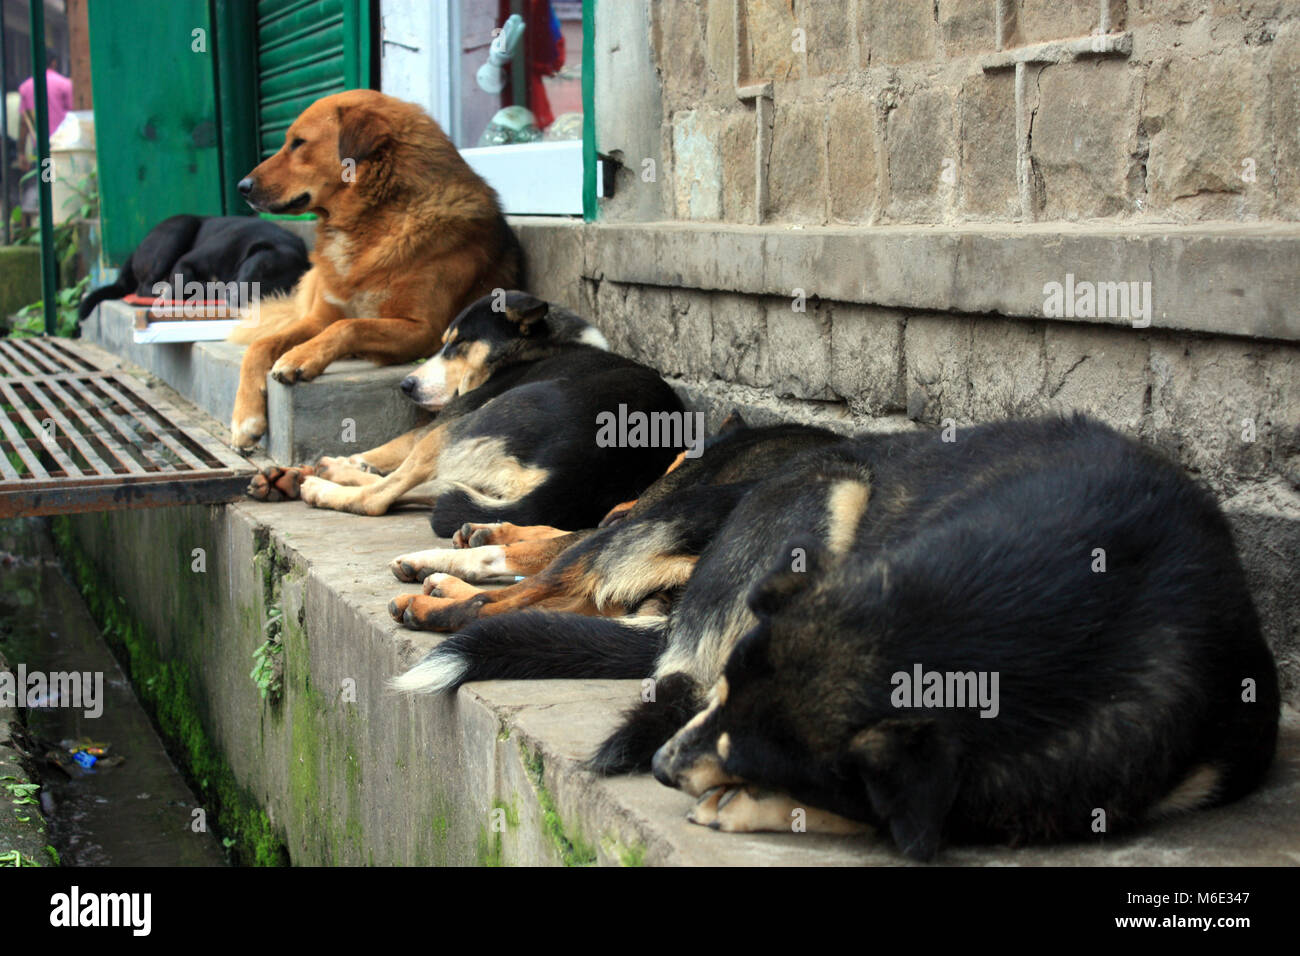 Dogs in Dharamsala - Stock Image